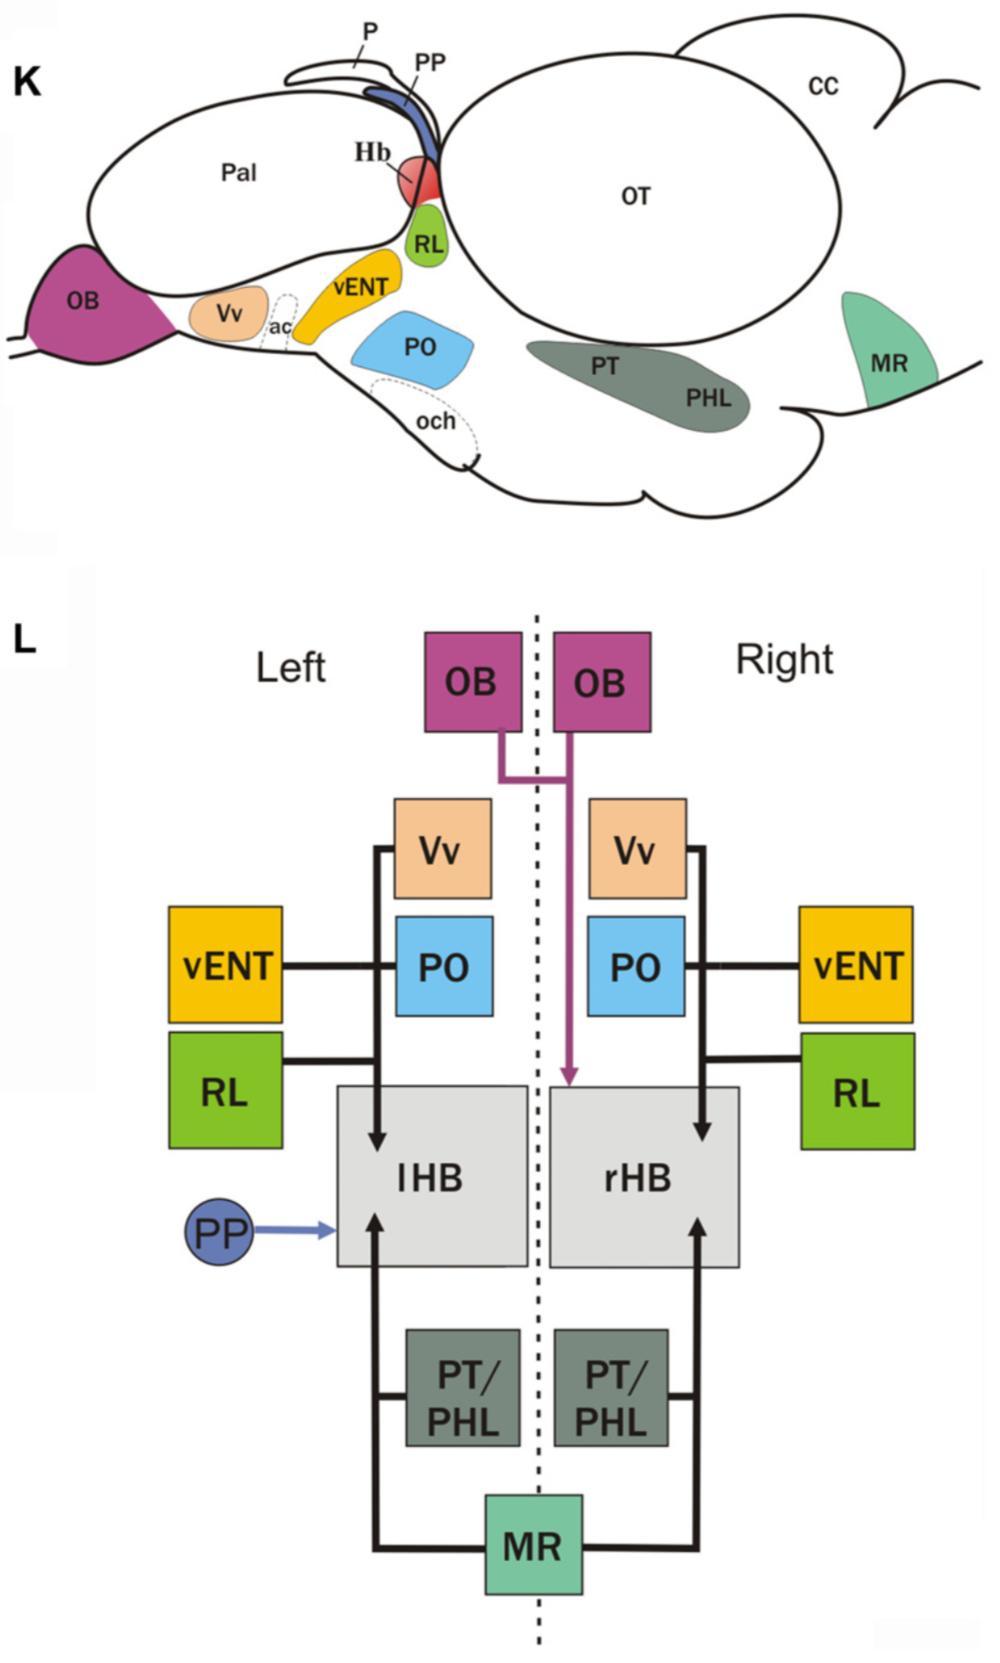 Schematics showing a summary of the main afferent areas to the habenula   from Turner et al., 2016.   ( K : outline of the brain in lateral view,  L : boxes diagram).  (K)  The brain nuclei that project to the habenula are shown as colored areas.  (L)  Boxes represent main nuclei projecting to the habenula, while arrows represent projections. Asymmetric projection from the parapineal (PP) to left habenula (lHB) is shown with a blue arrow. Asymmetric projection from mitral cells of the olfactory bulbs (OB) to right habenula (rHB) is shown with a pink arrow. All other afferent areas that seem to innervate both left and right habenula are represented with black arrows.